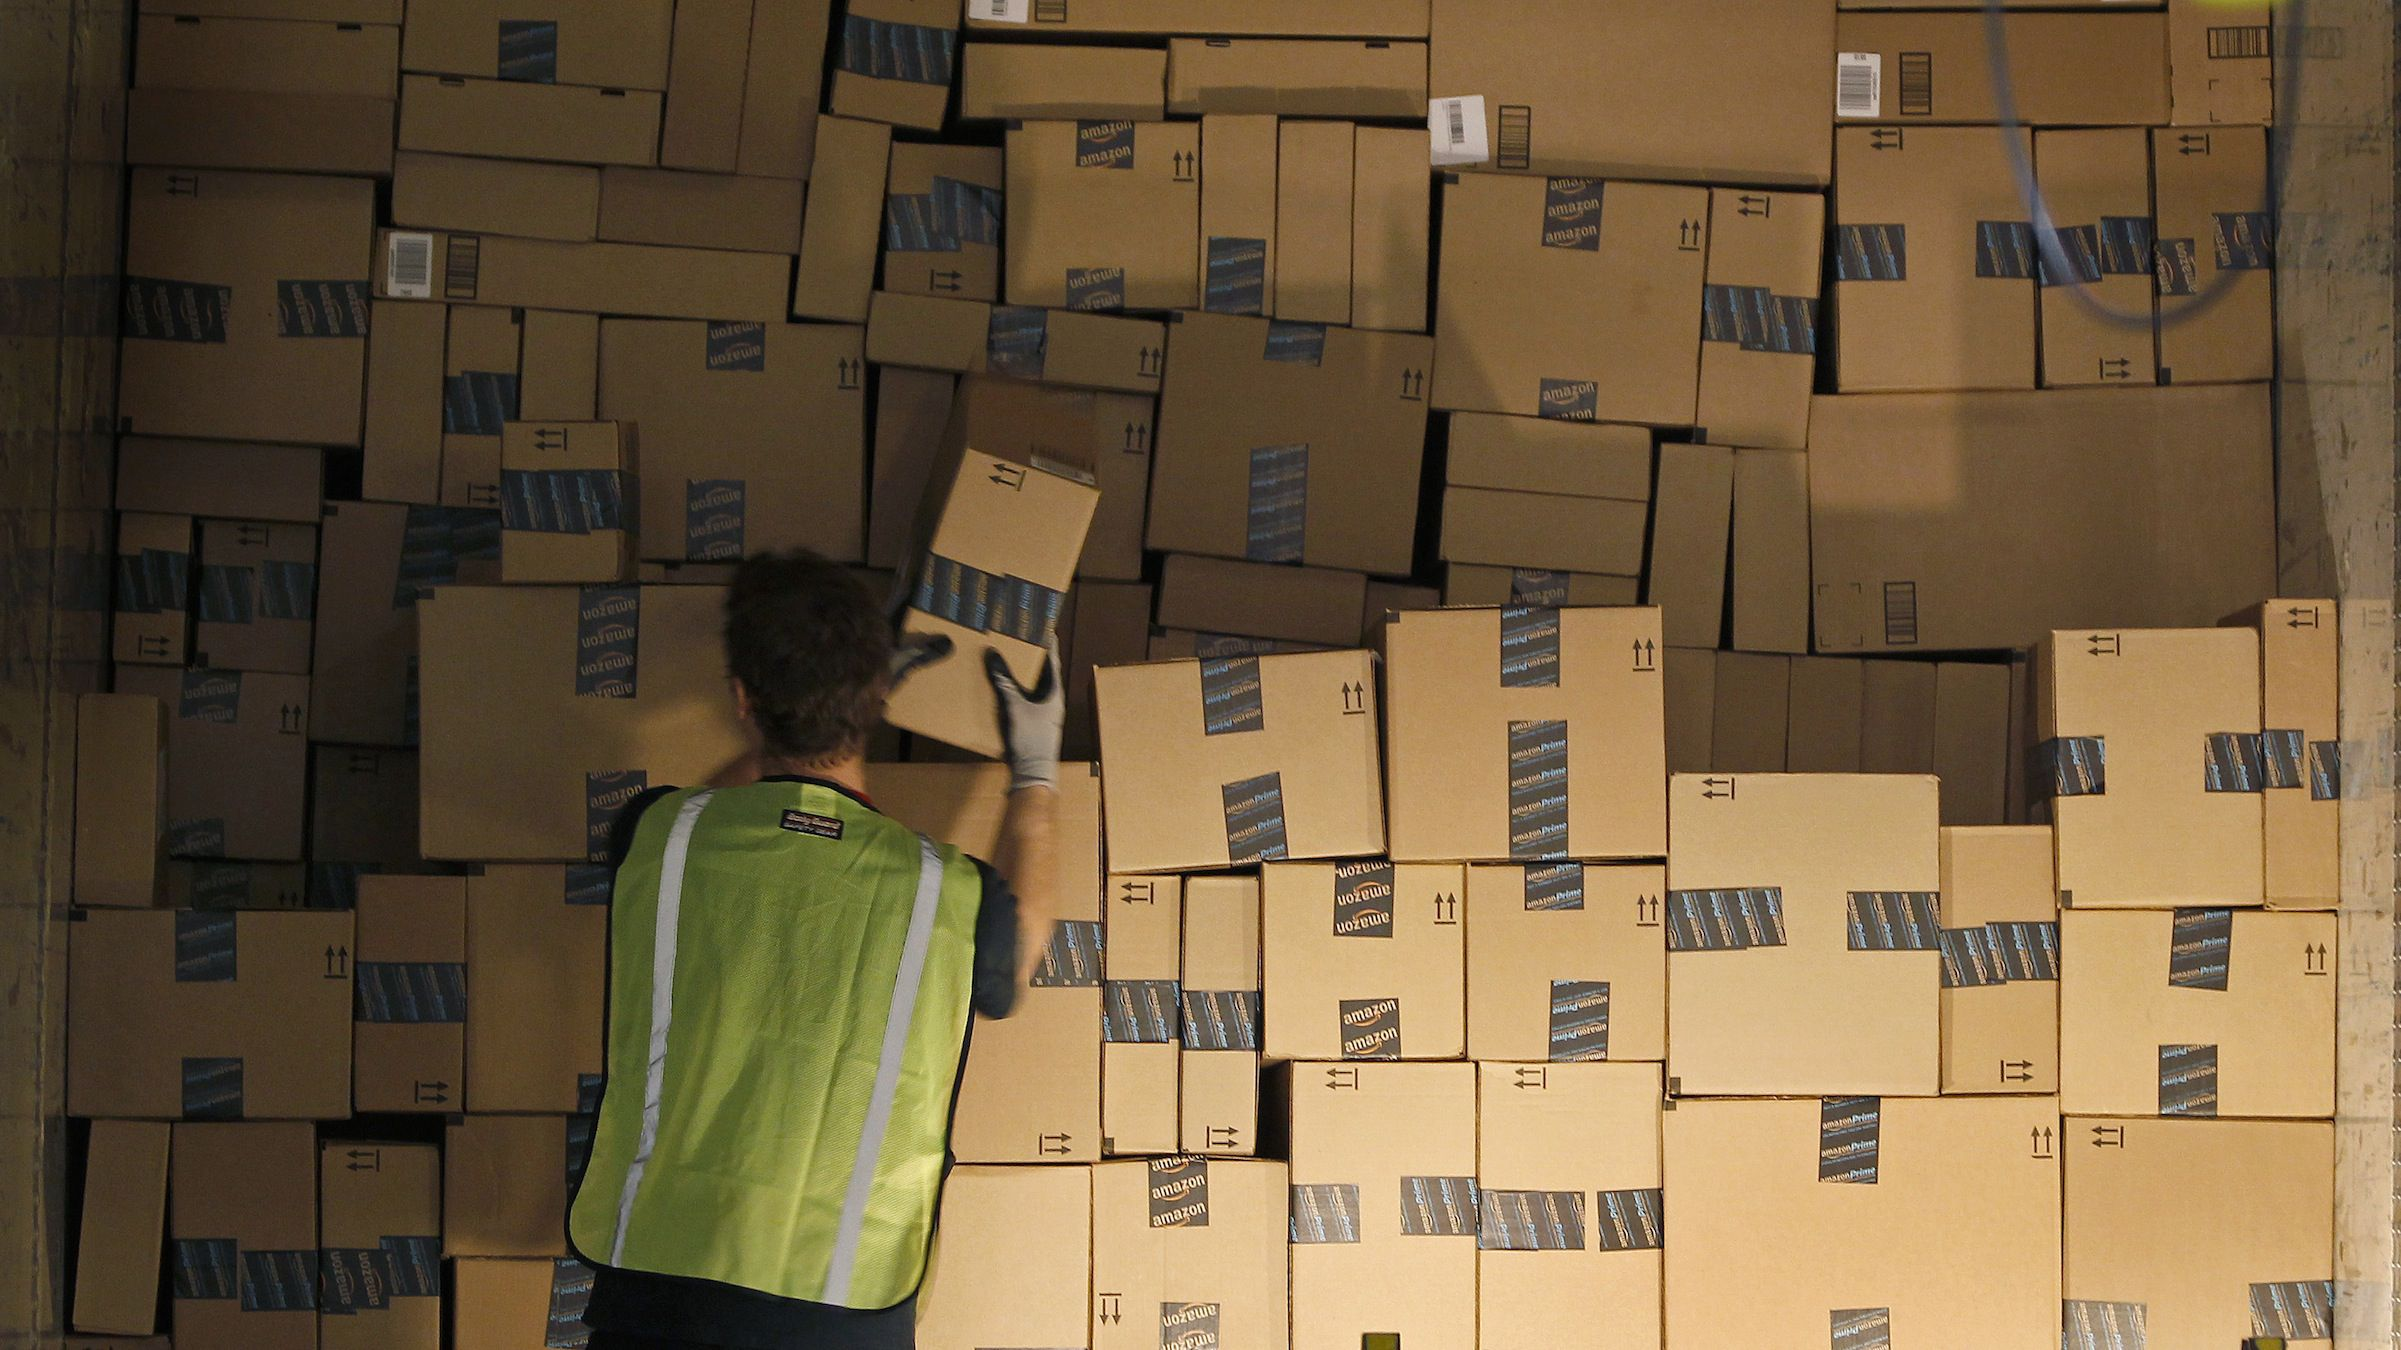 A worker stacks a shipping trailer with boxed items for delivery at Amazon's distribution center in Phoenix, Arizona November 22, 2013. The web-based retailer is preparing for Cyber Monday, traditionally the busiest day of the year for online purchases, which falls on December 2 in 2013. REUTERS/Ralph D. Freso   (UNITED STATES - Tags: BUSINESS EMPLOYMENT) - RTX15PA1